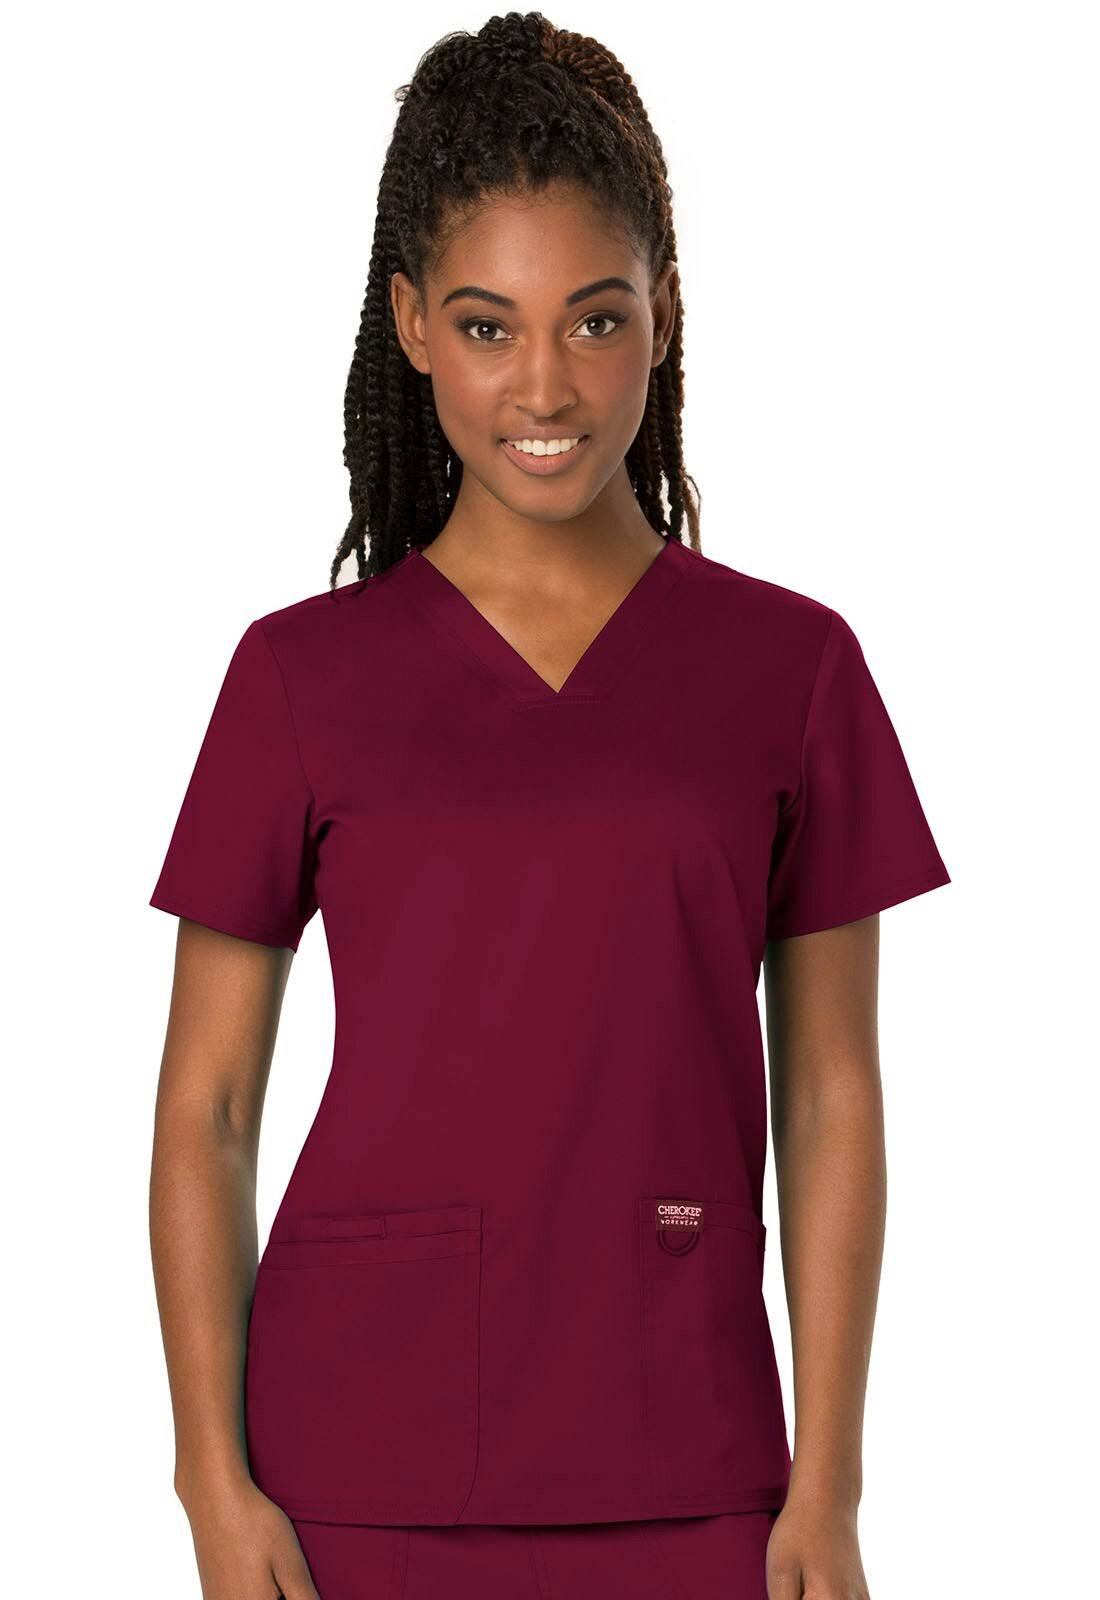 Cherokee Workwear Revolution V-Neck Scrub Top - S - Wine